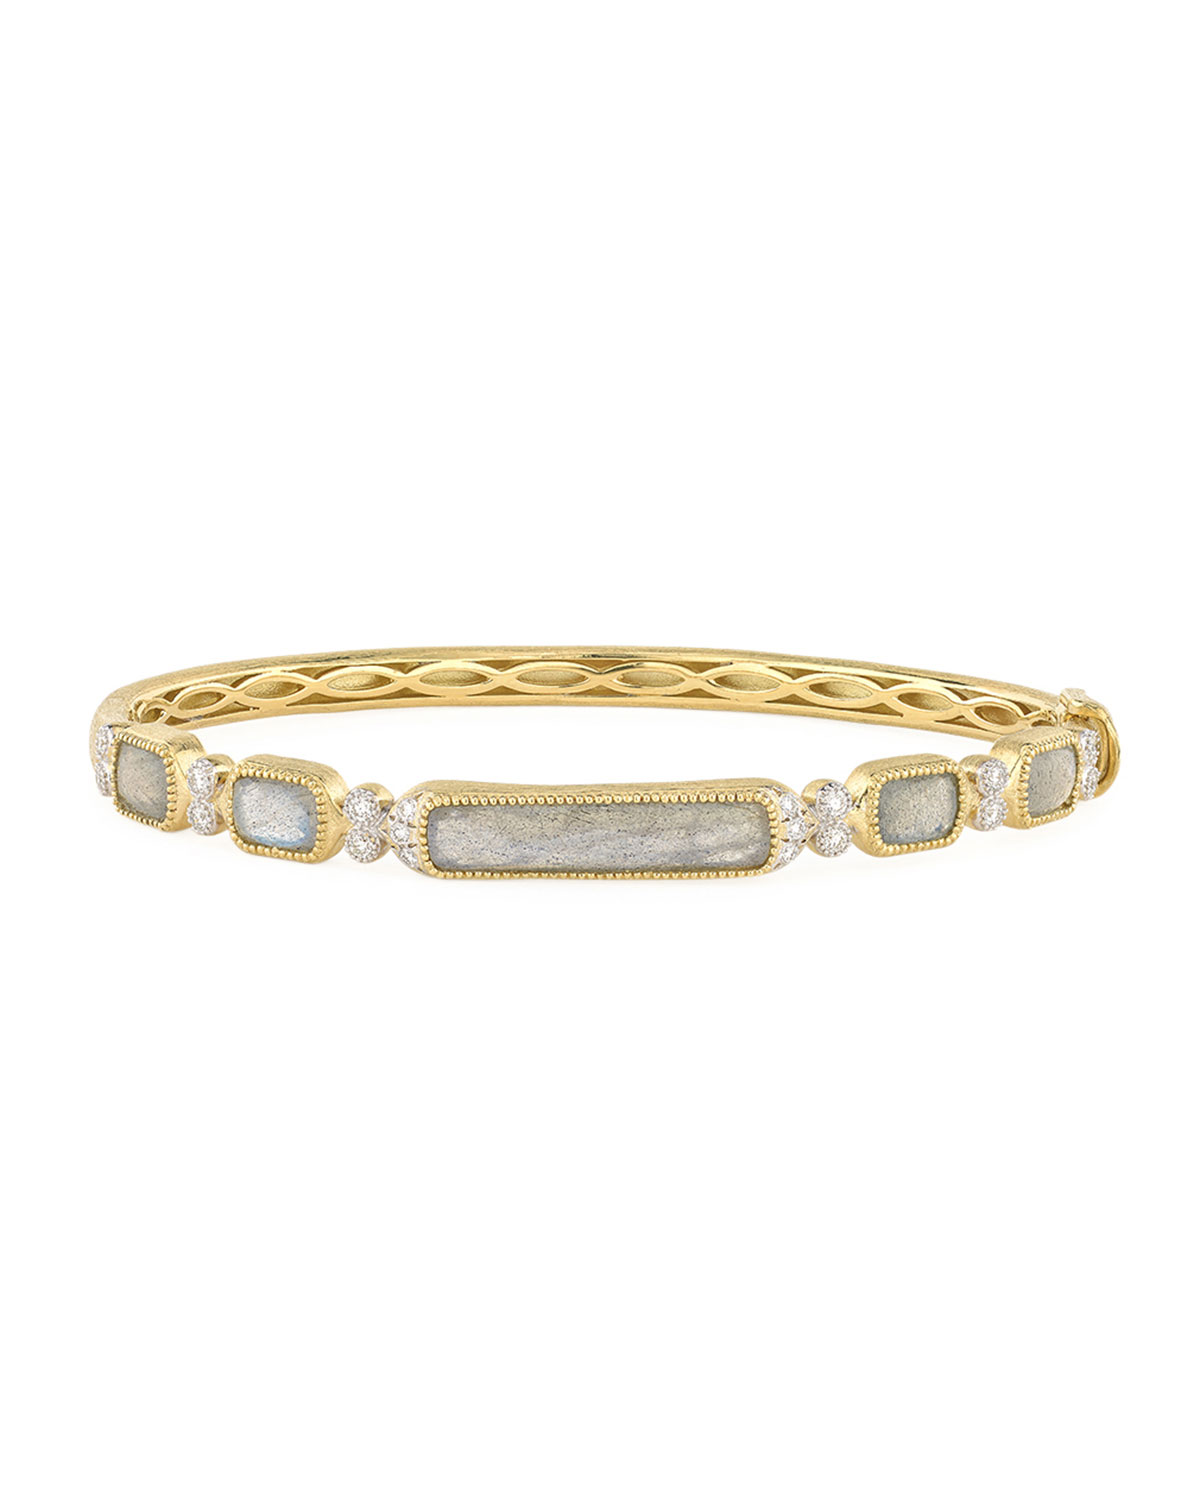 Jude Frances Moroccan 18K Labradorite/Diamond Bangle